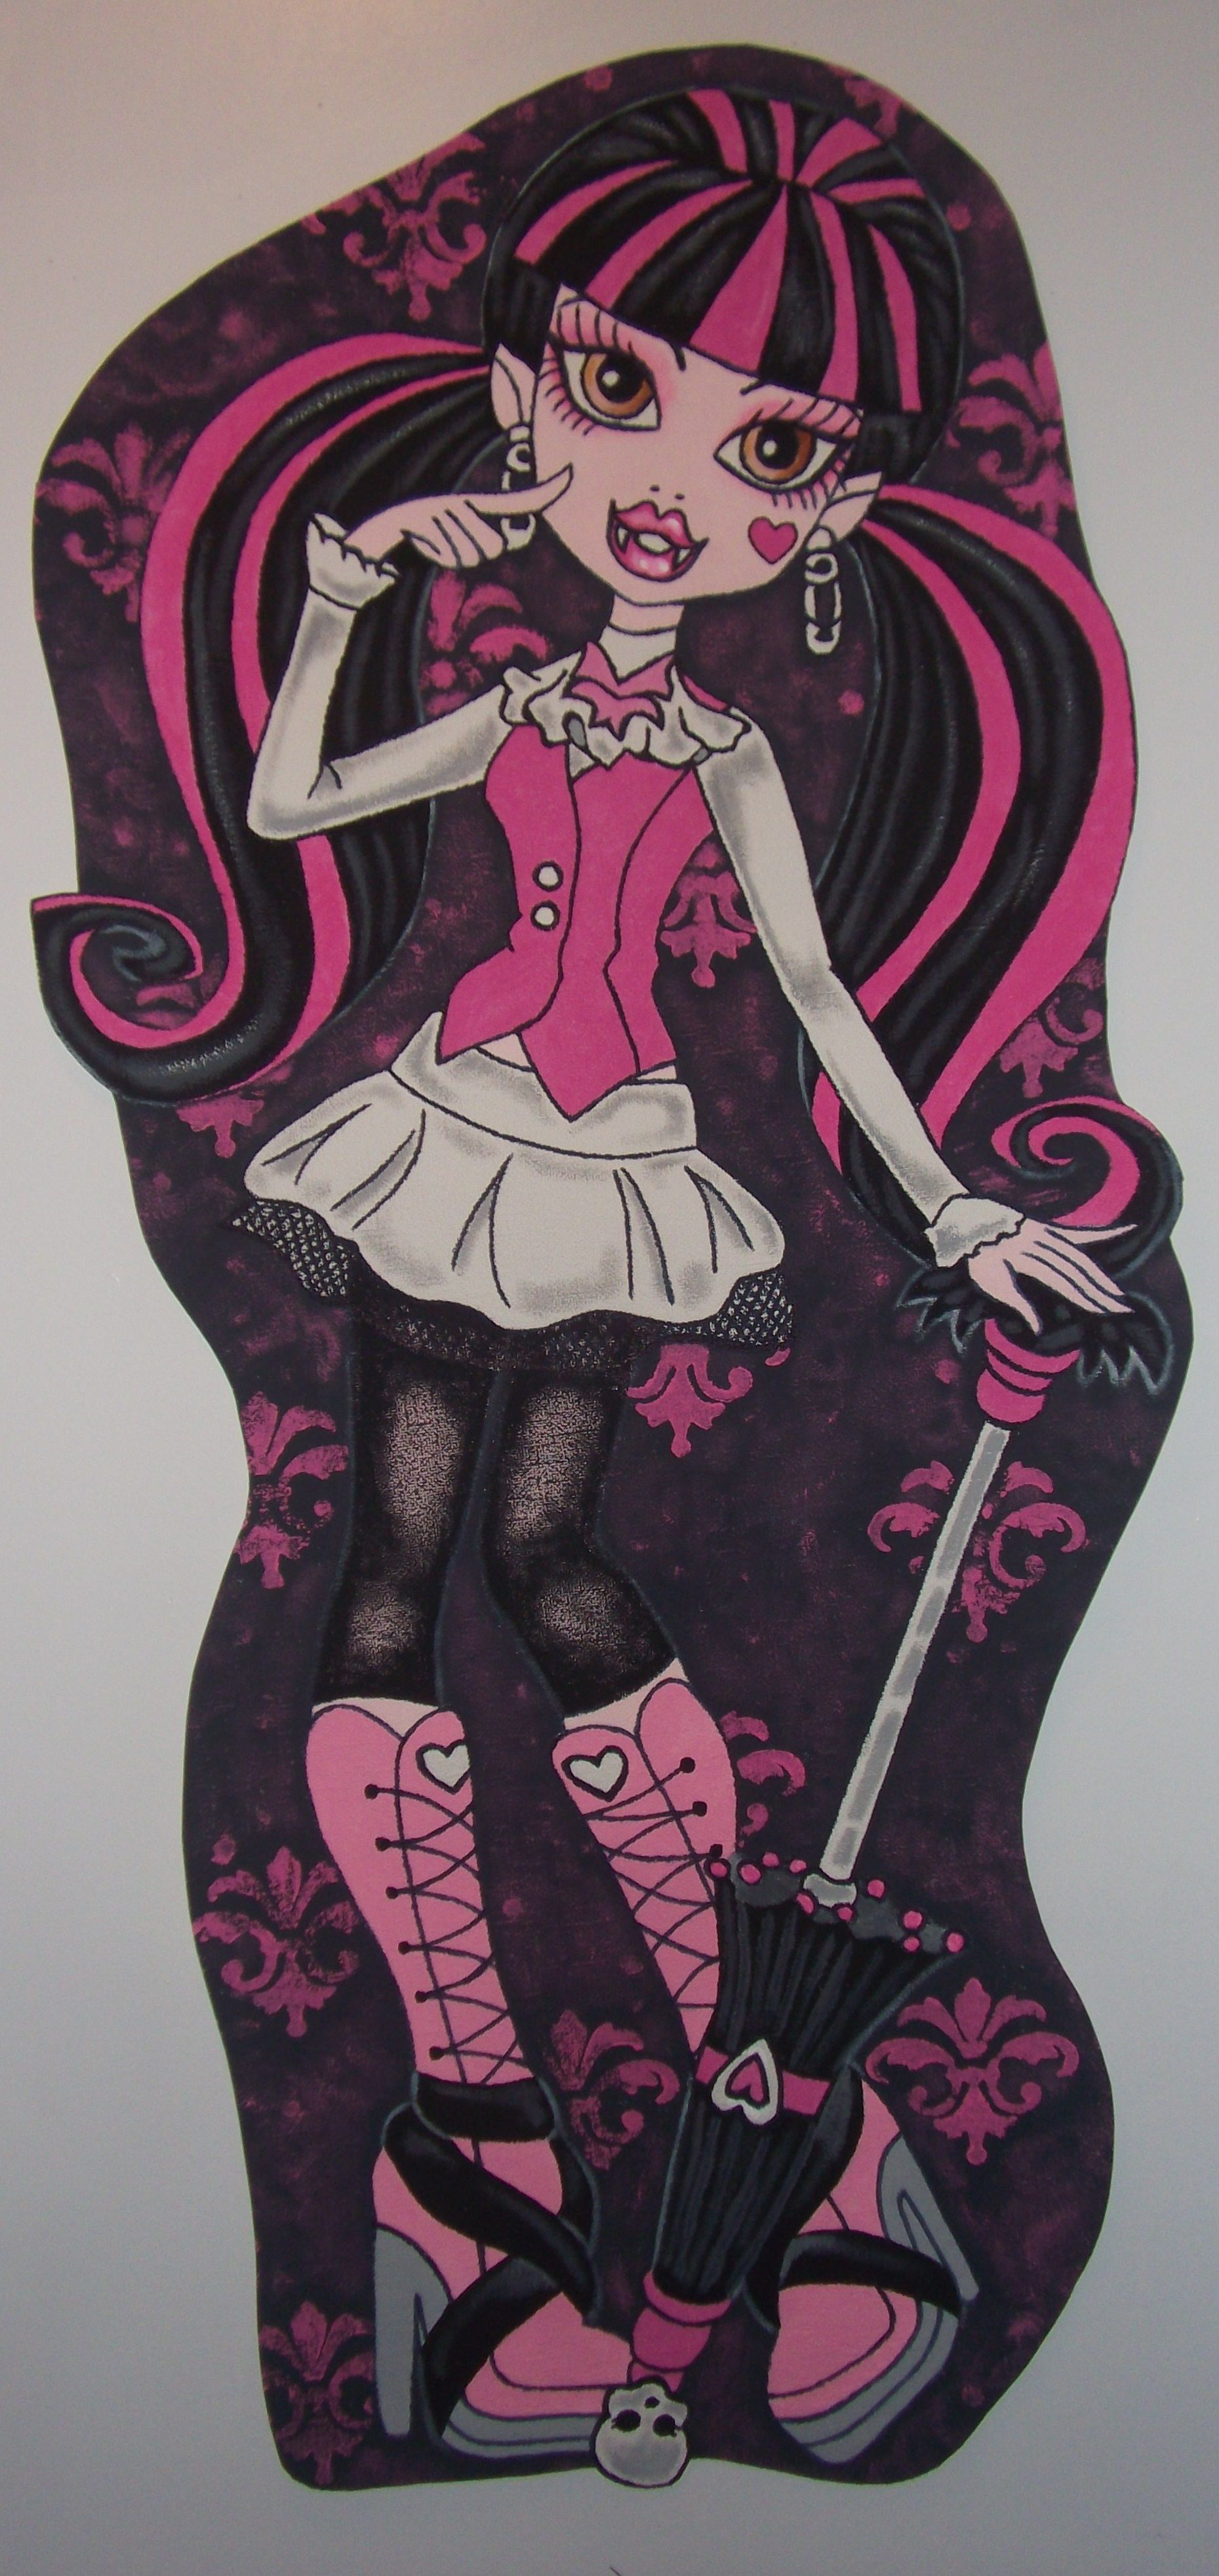 Google themes monster high - 17 Best Images About Monster High On Pinterest Vinyls Acrylics And Decor Room